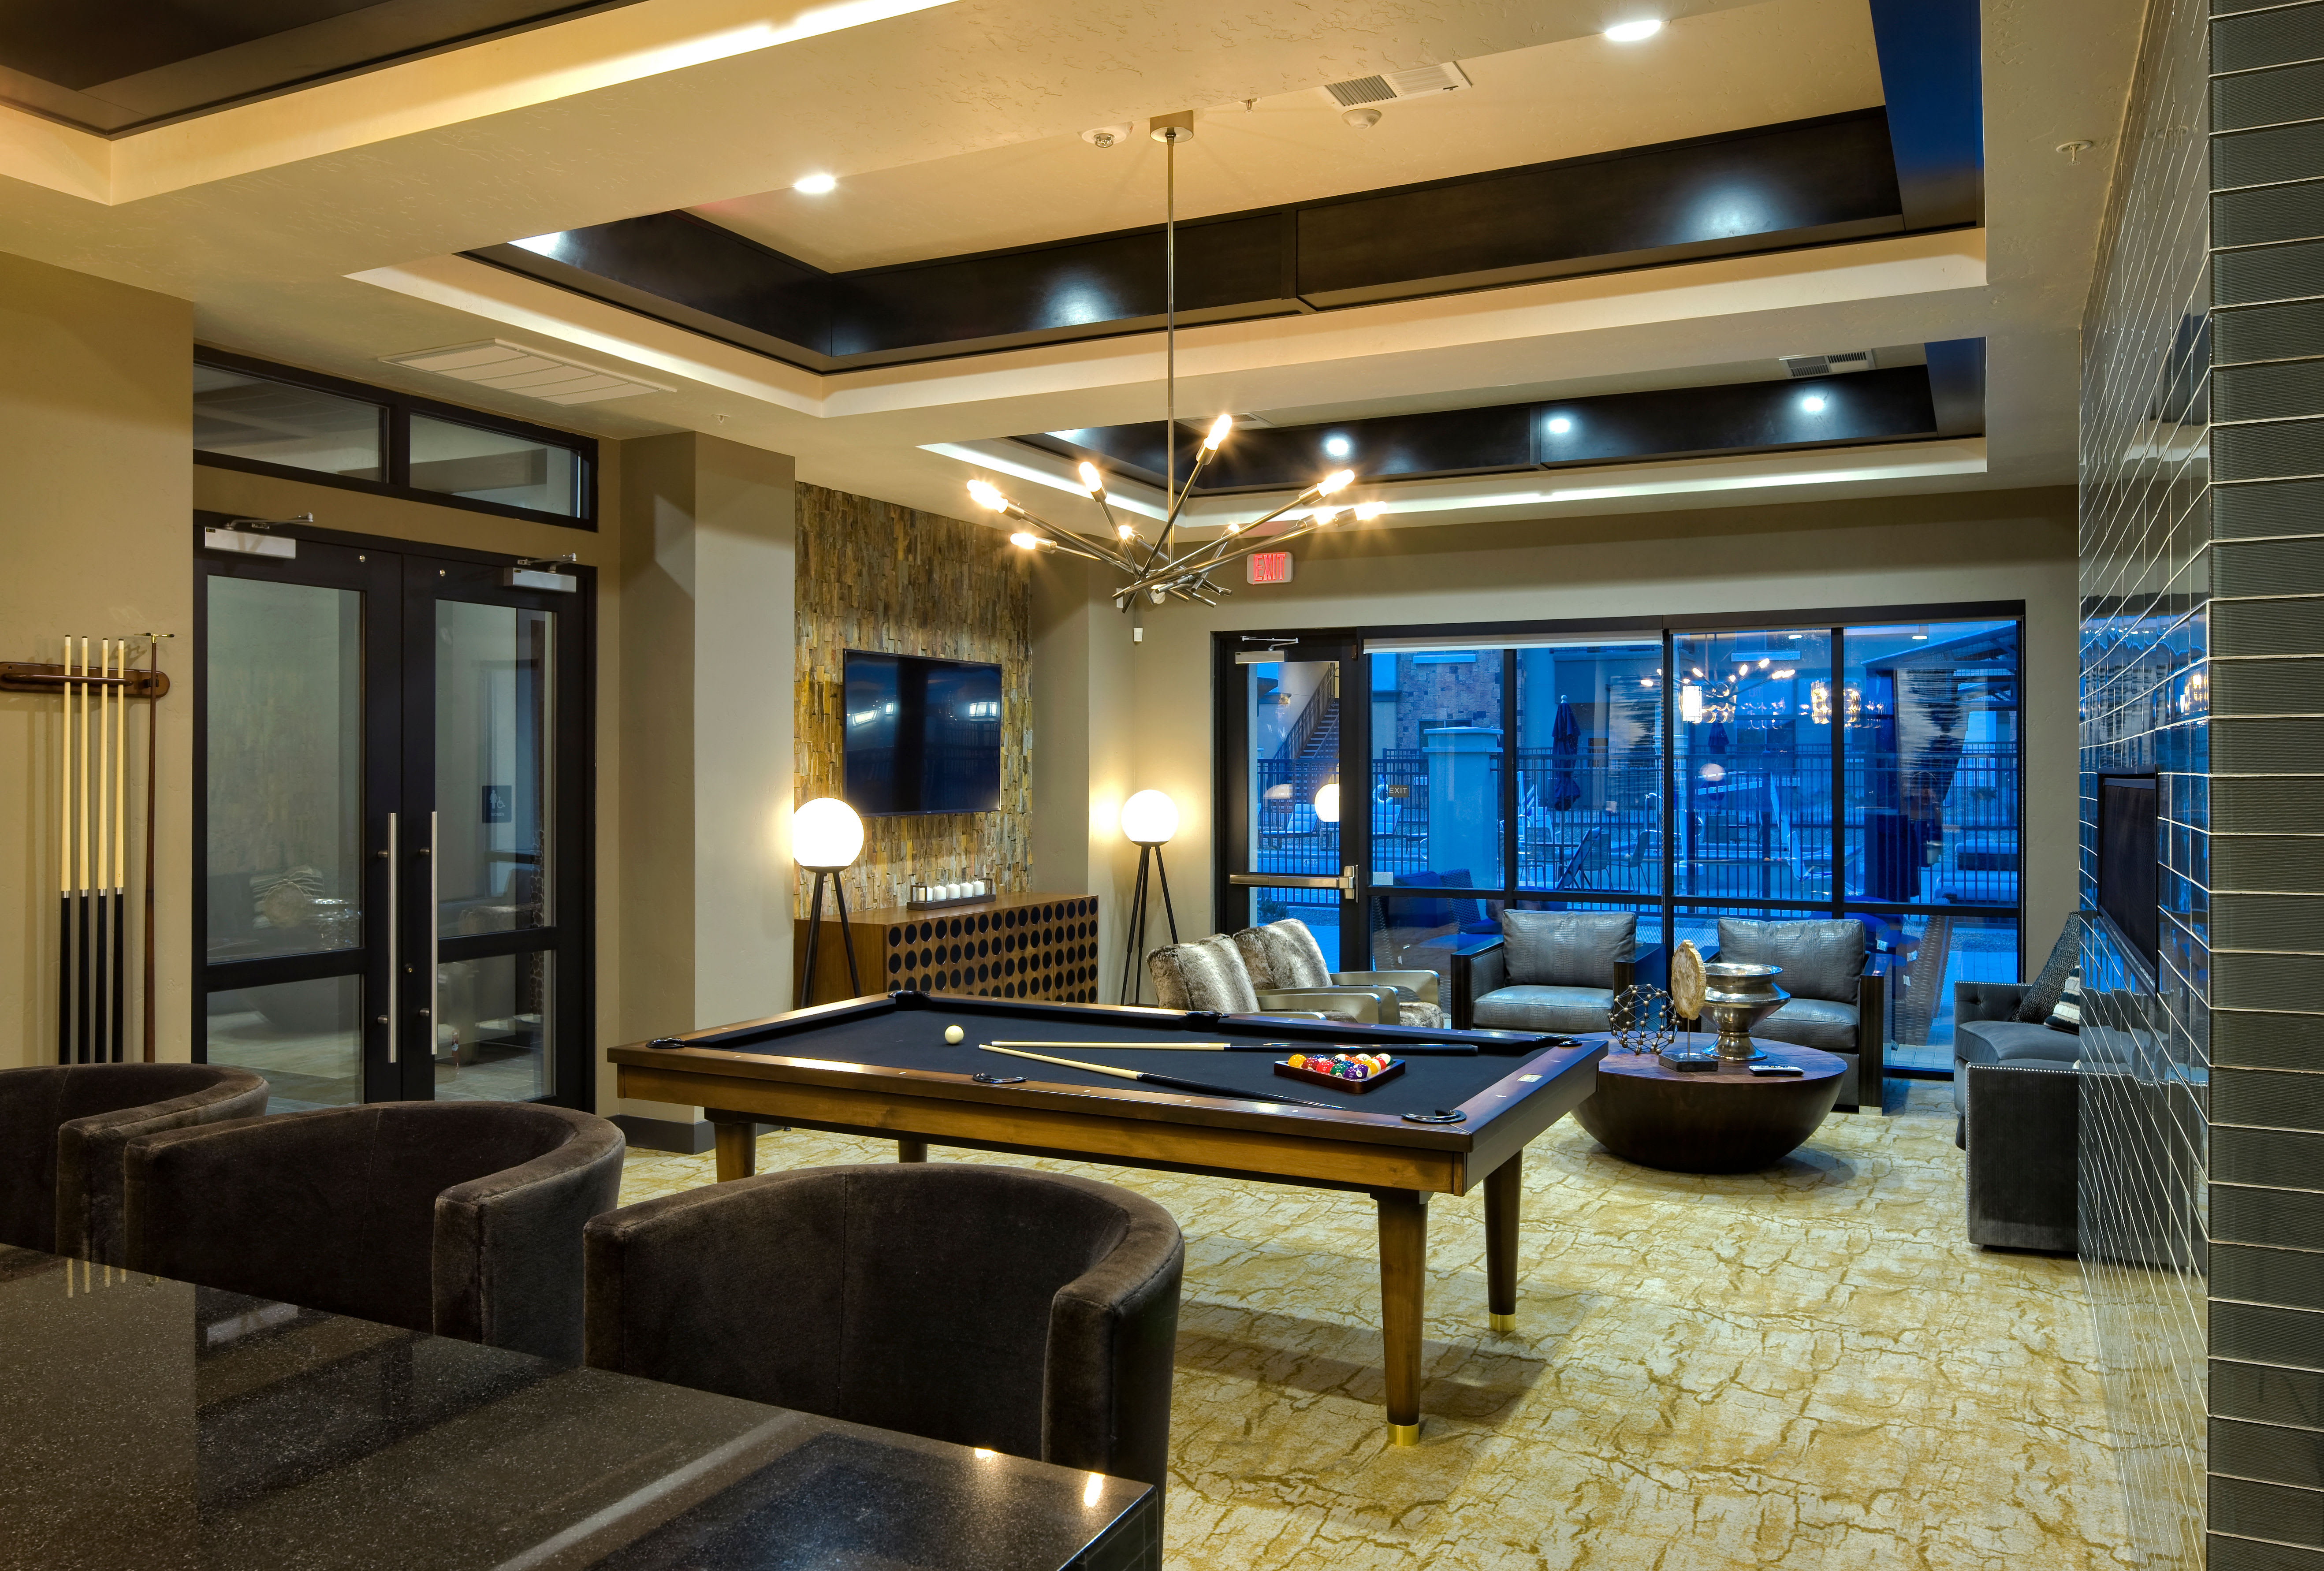 Modern architecture and decor in the resident clubhouse at Olympus Alameda in Albuquerque, New Mexico